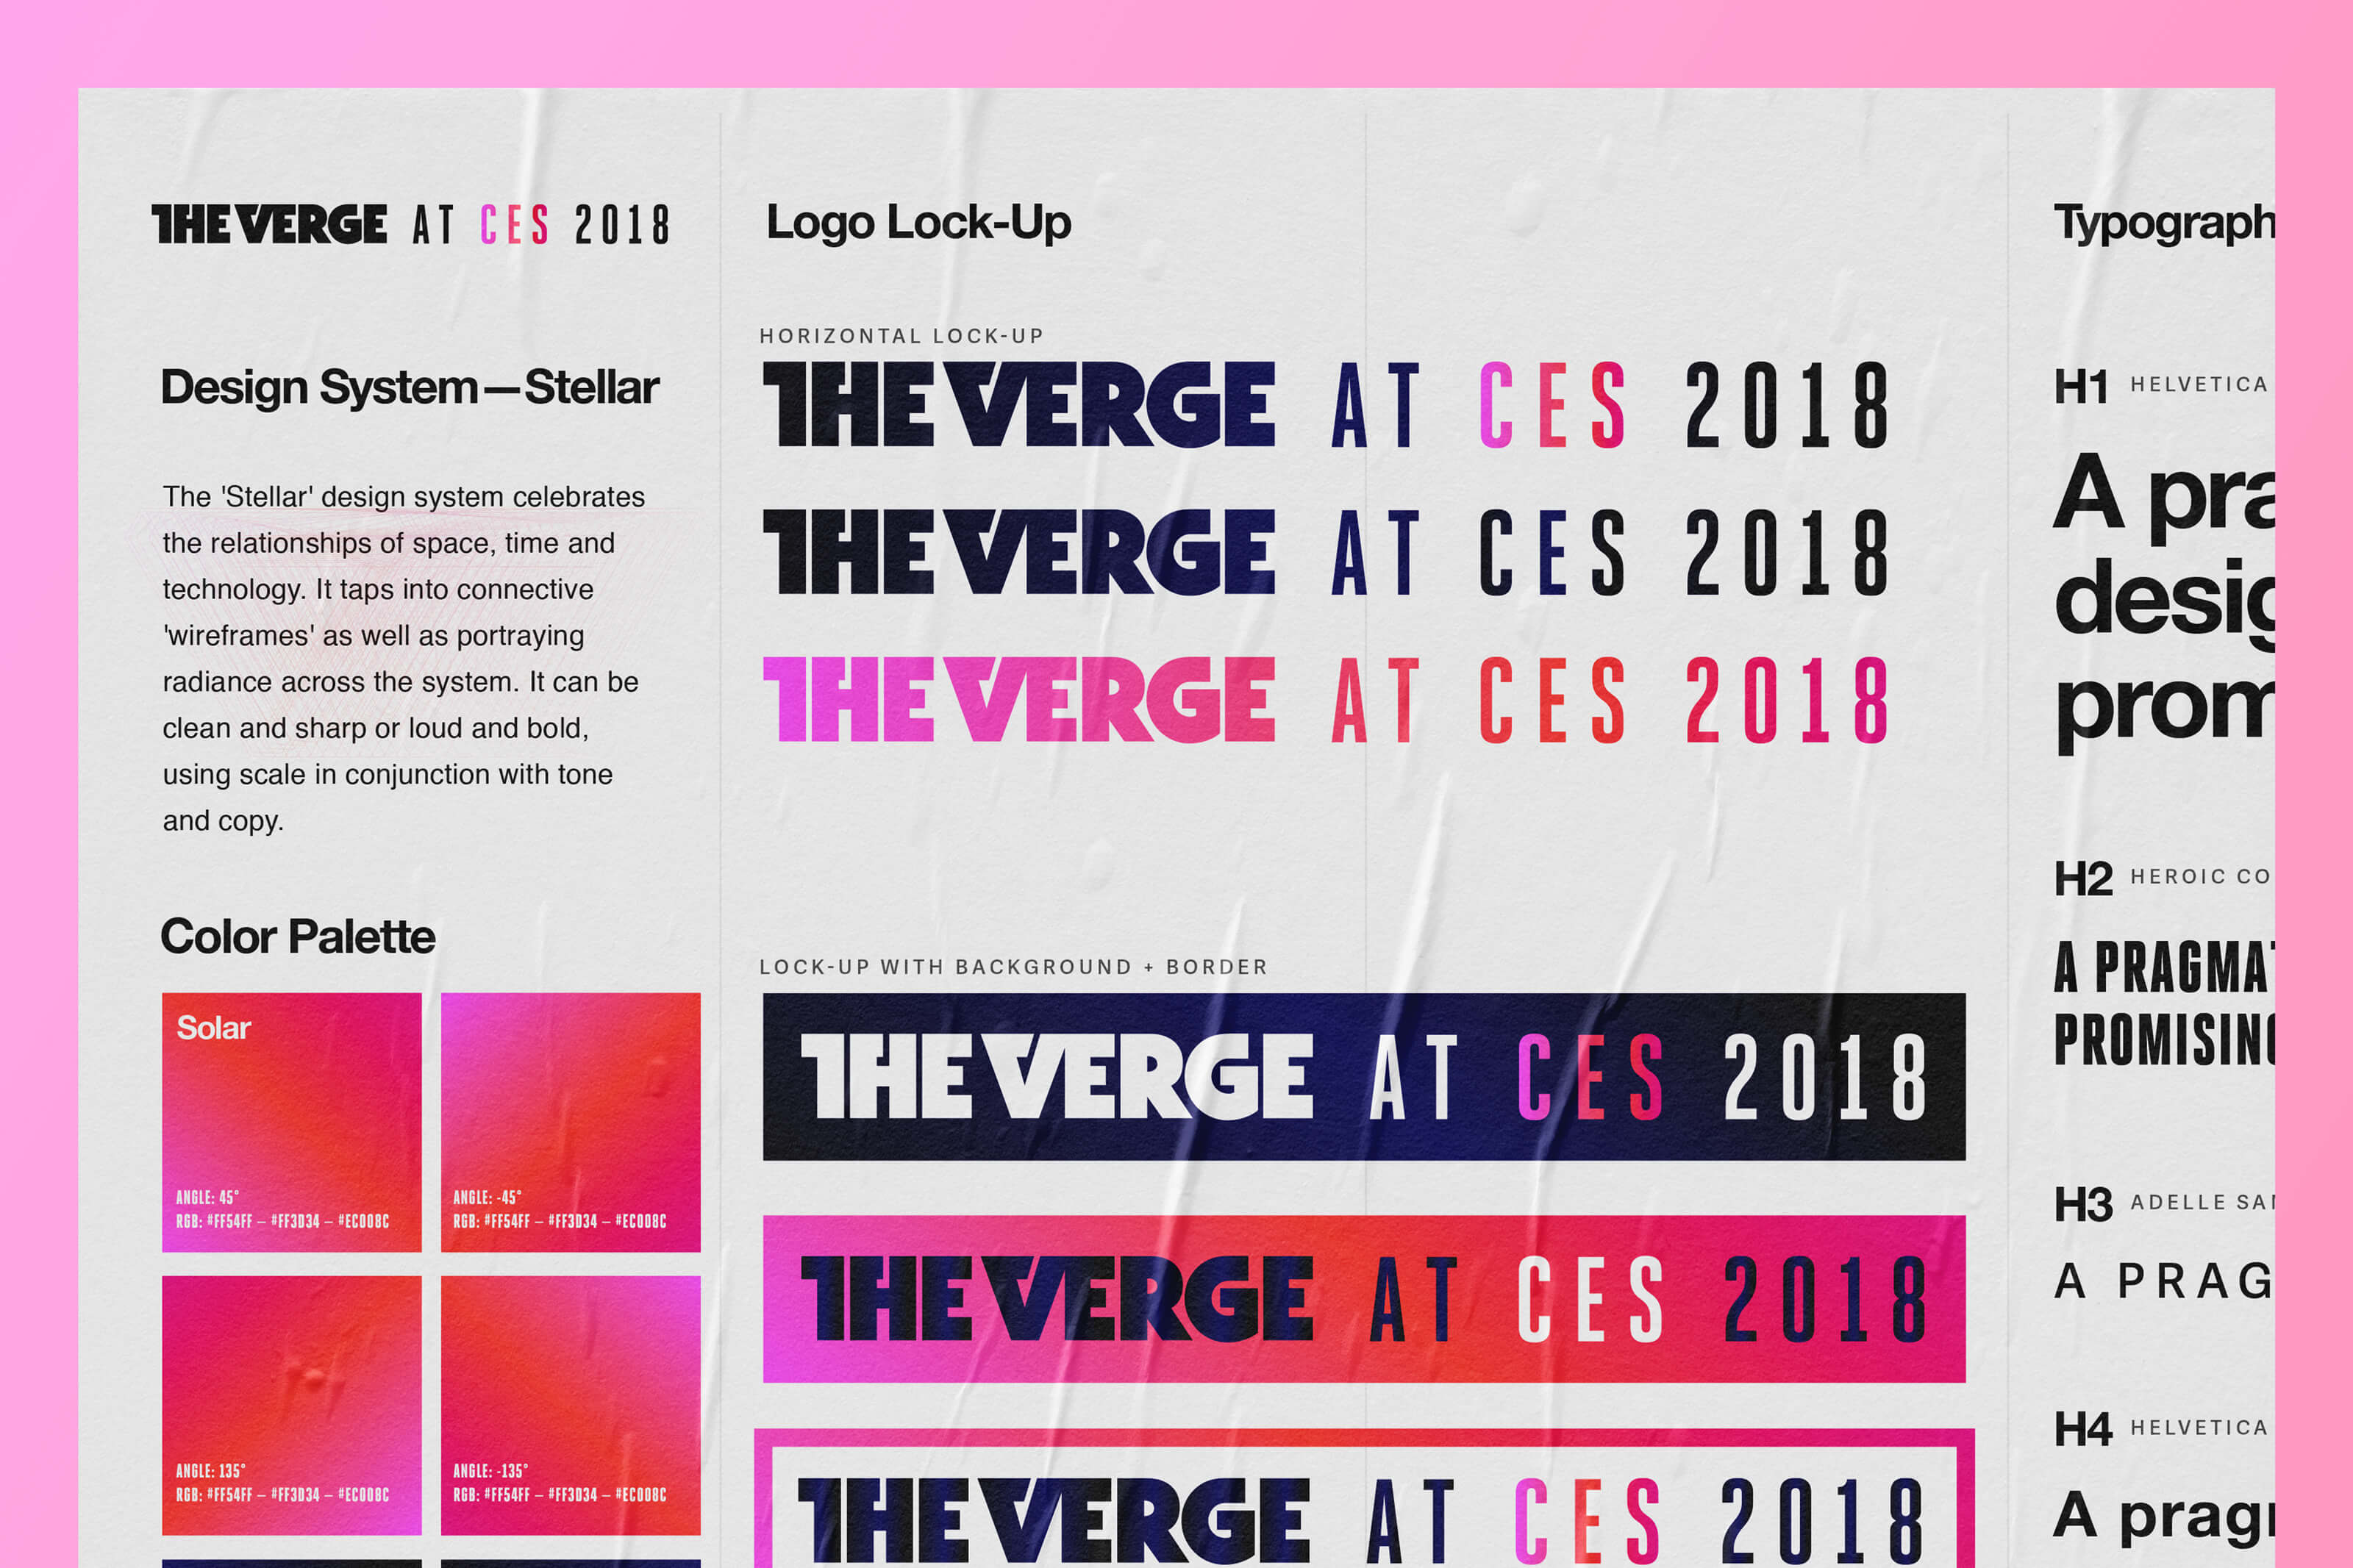 The Verge design system